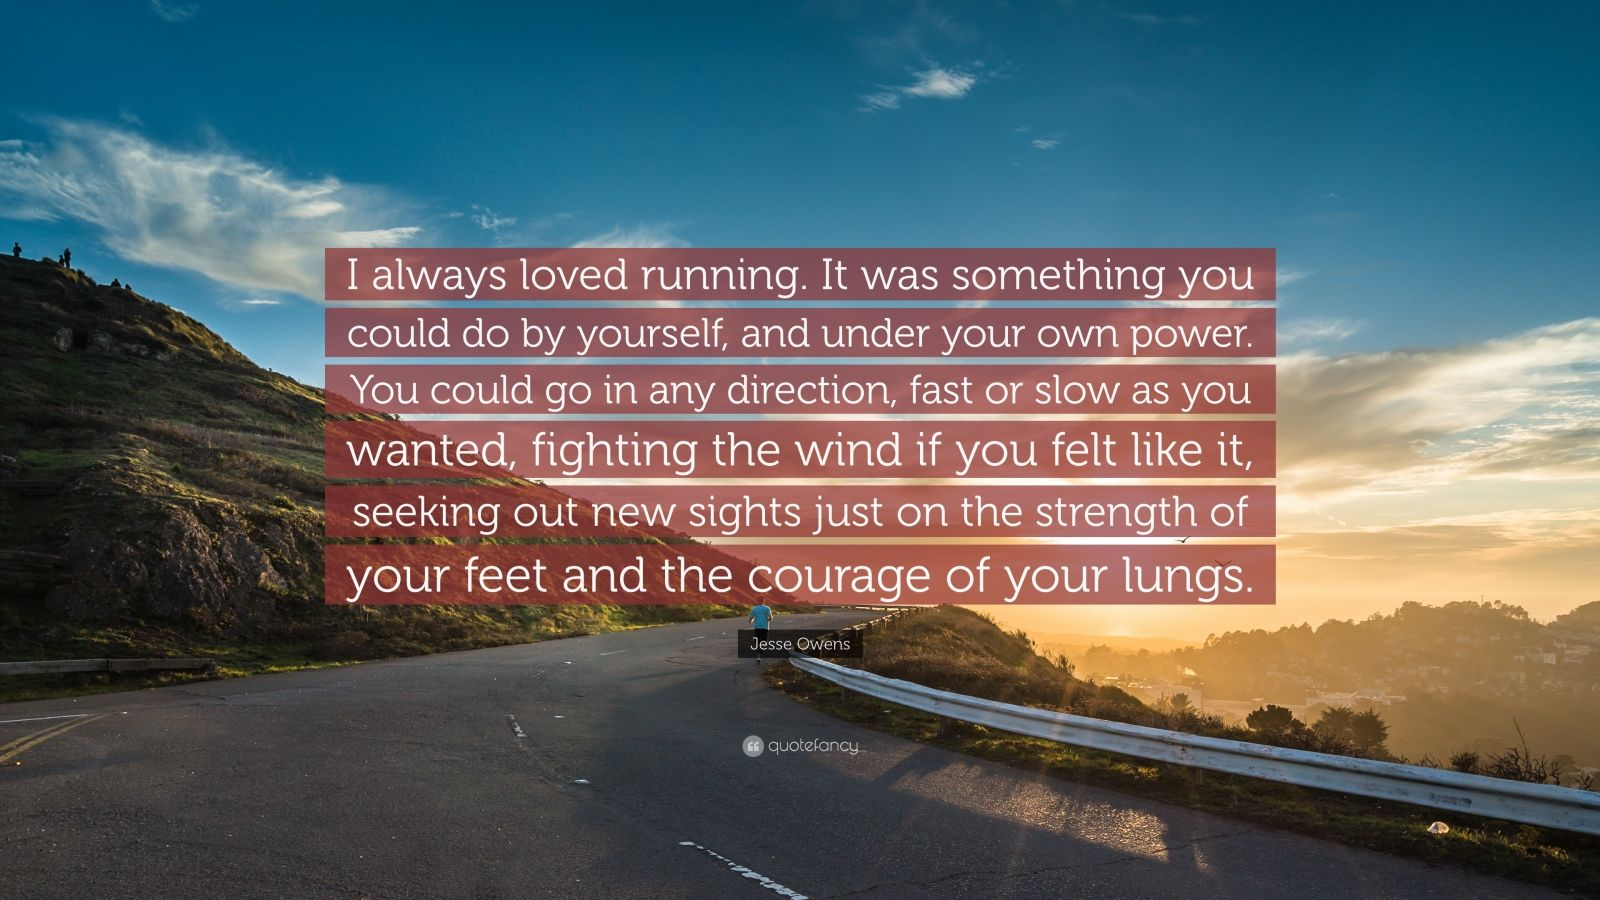 "Jesse Owens Quote: ""I always loved running. It was something you could do by yourself, and under your own power. You could go in any direction, fast or slow as you wanted, fighting the wind if you felt like it, seeking out new sights just on the strength of your feet and the courage of your lungs."""